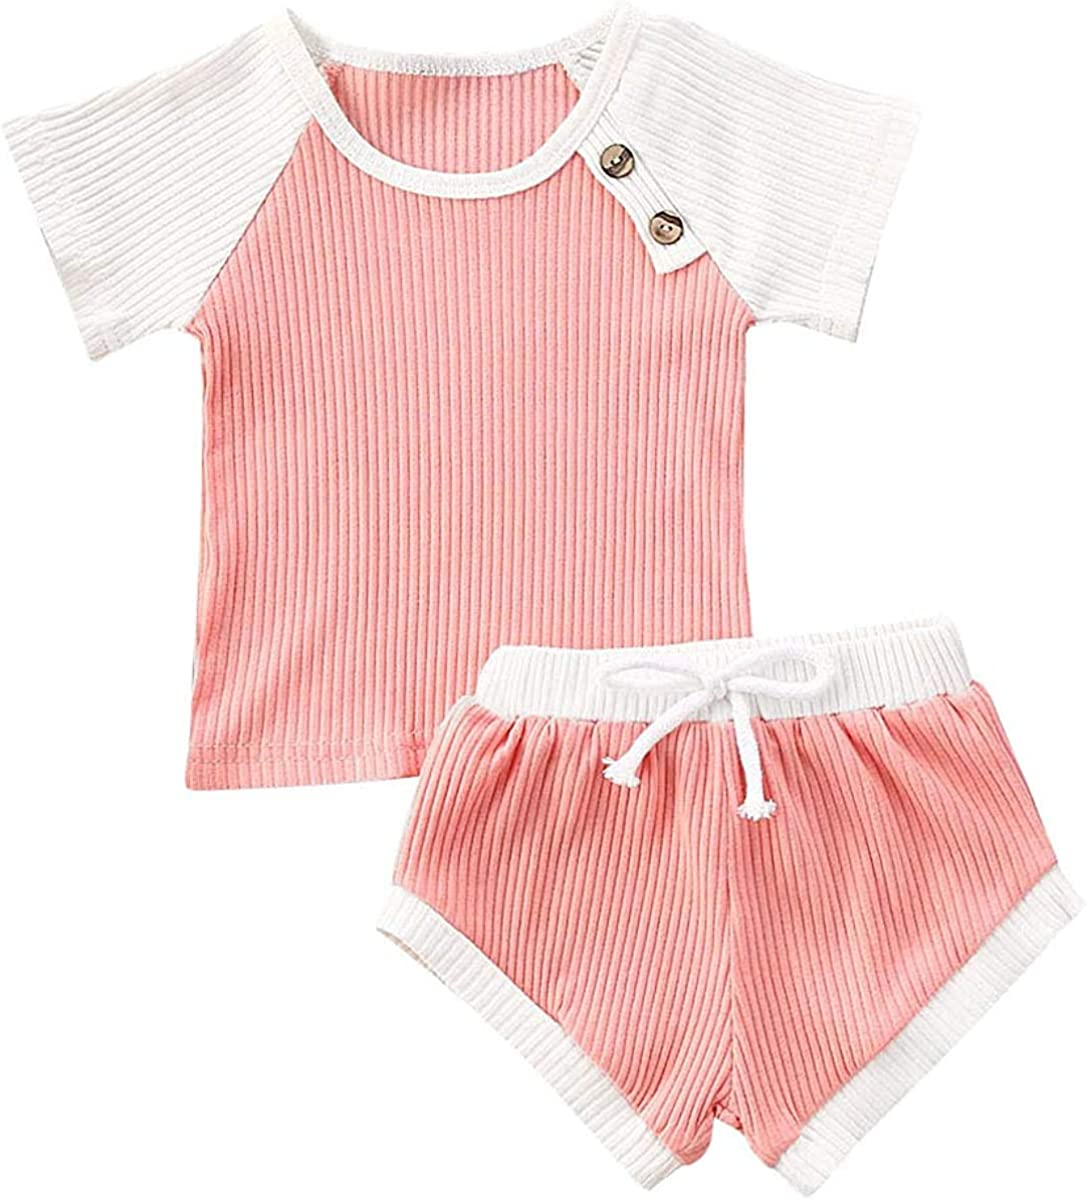 Baby Girls Boys Clothes Kids Newborn Boy Girl Knitted Short Sleeve Top with Shorts 2Pcs Pant Outfits Set